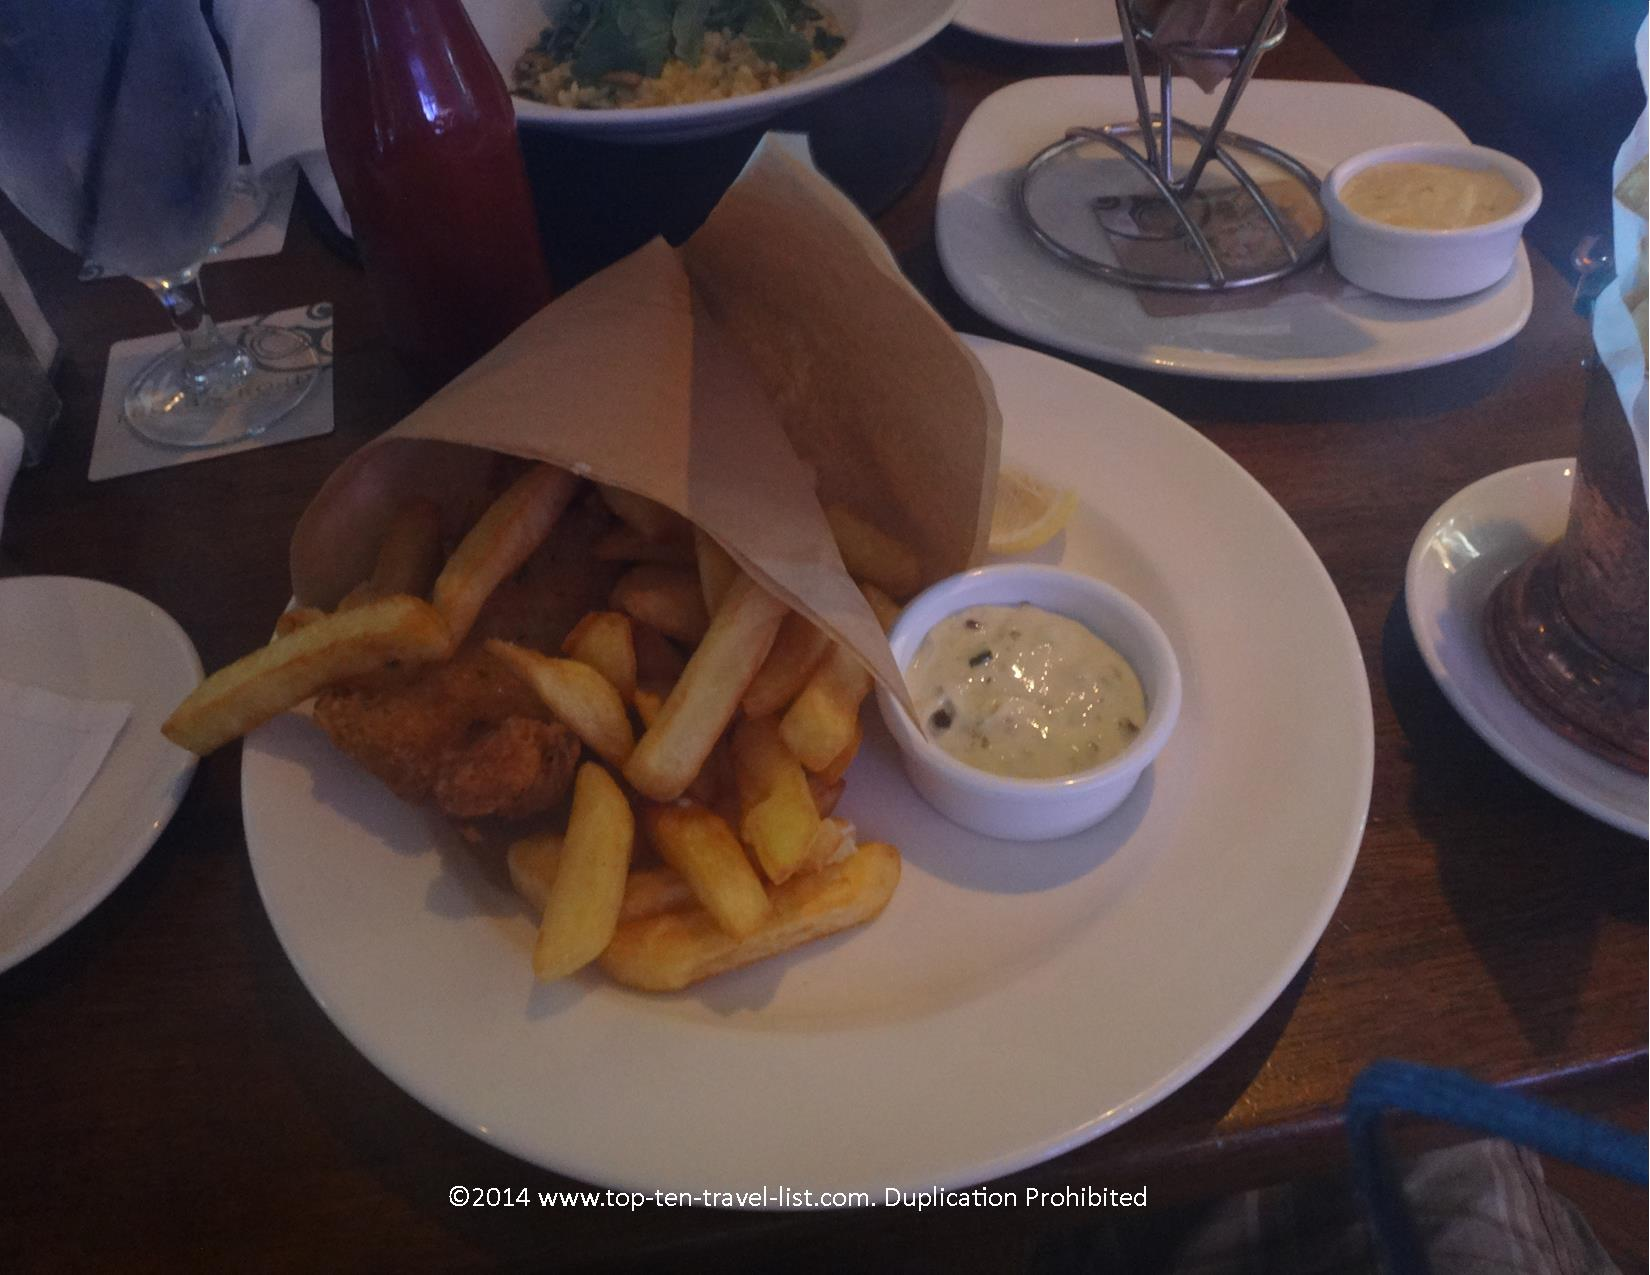 Gluten free fish and chips at Raglan Road Irish Pub in Orlando, Florida